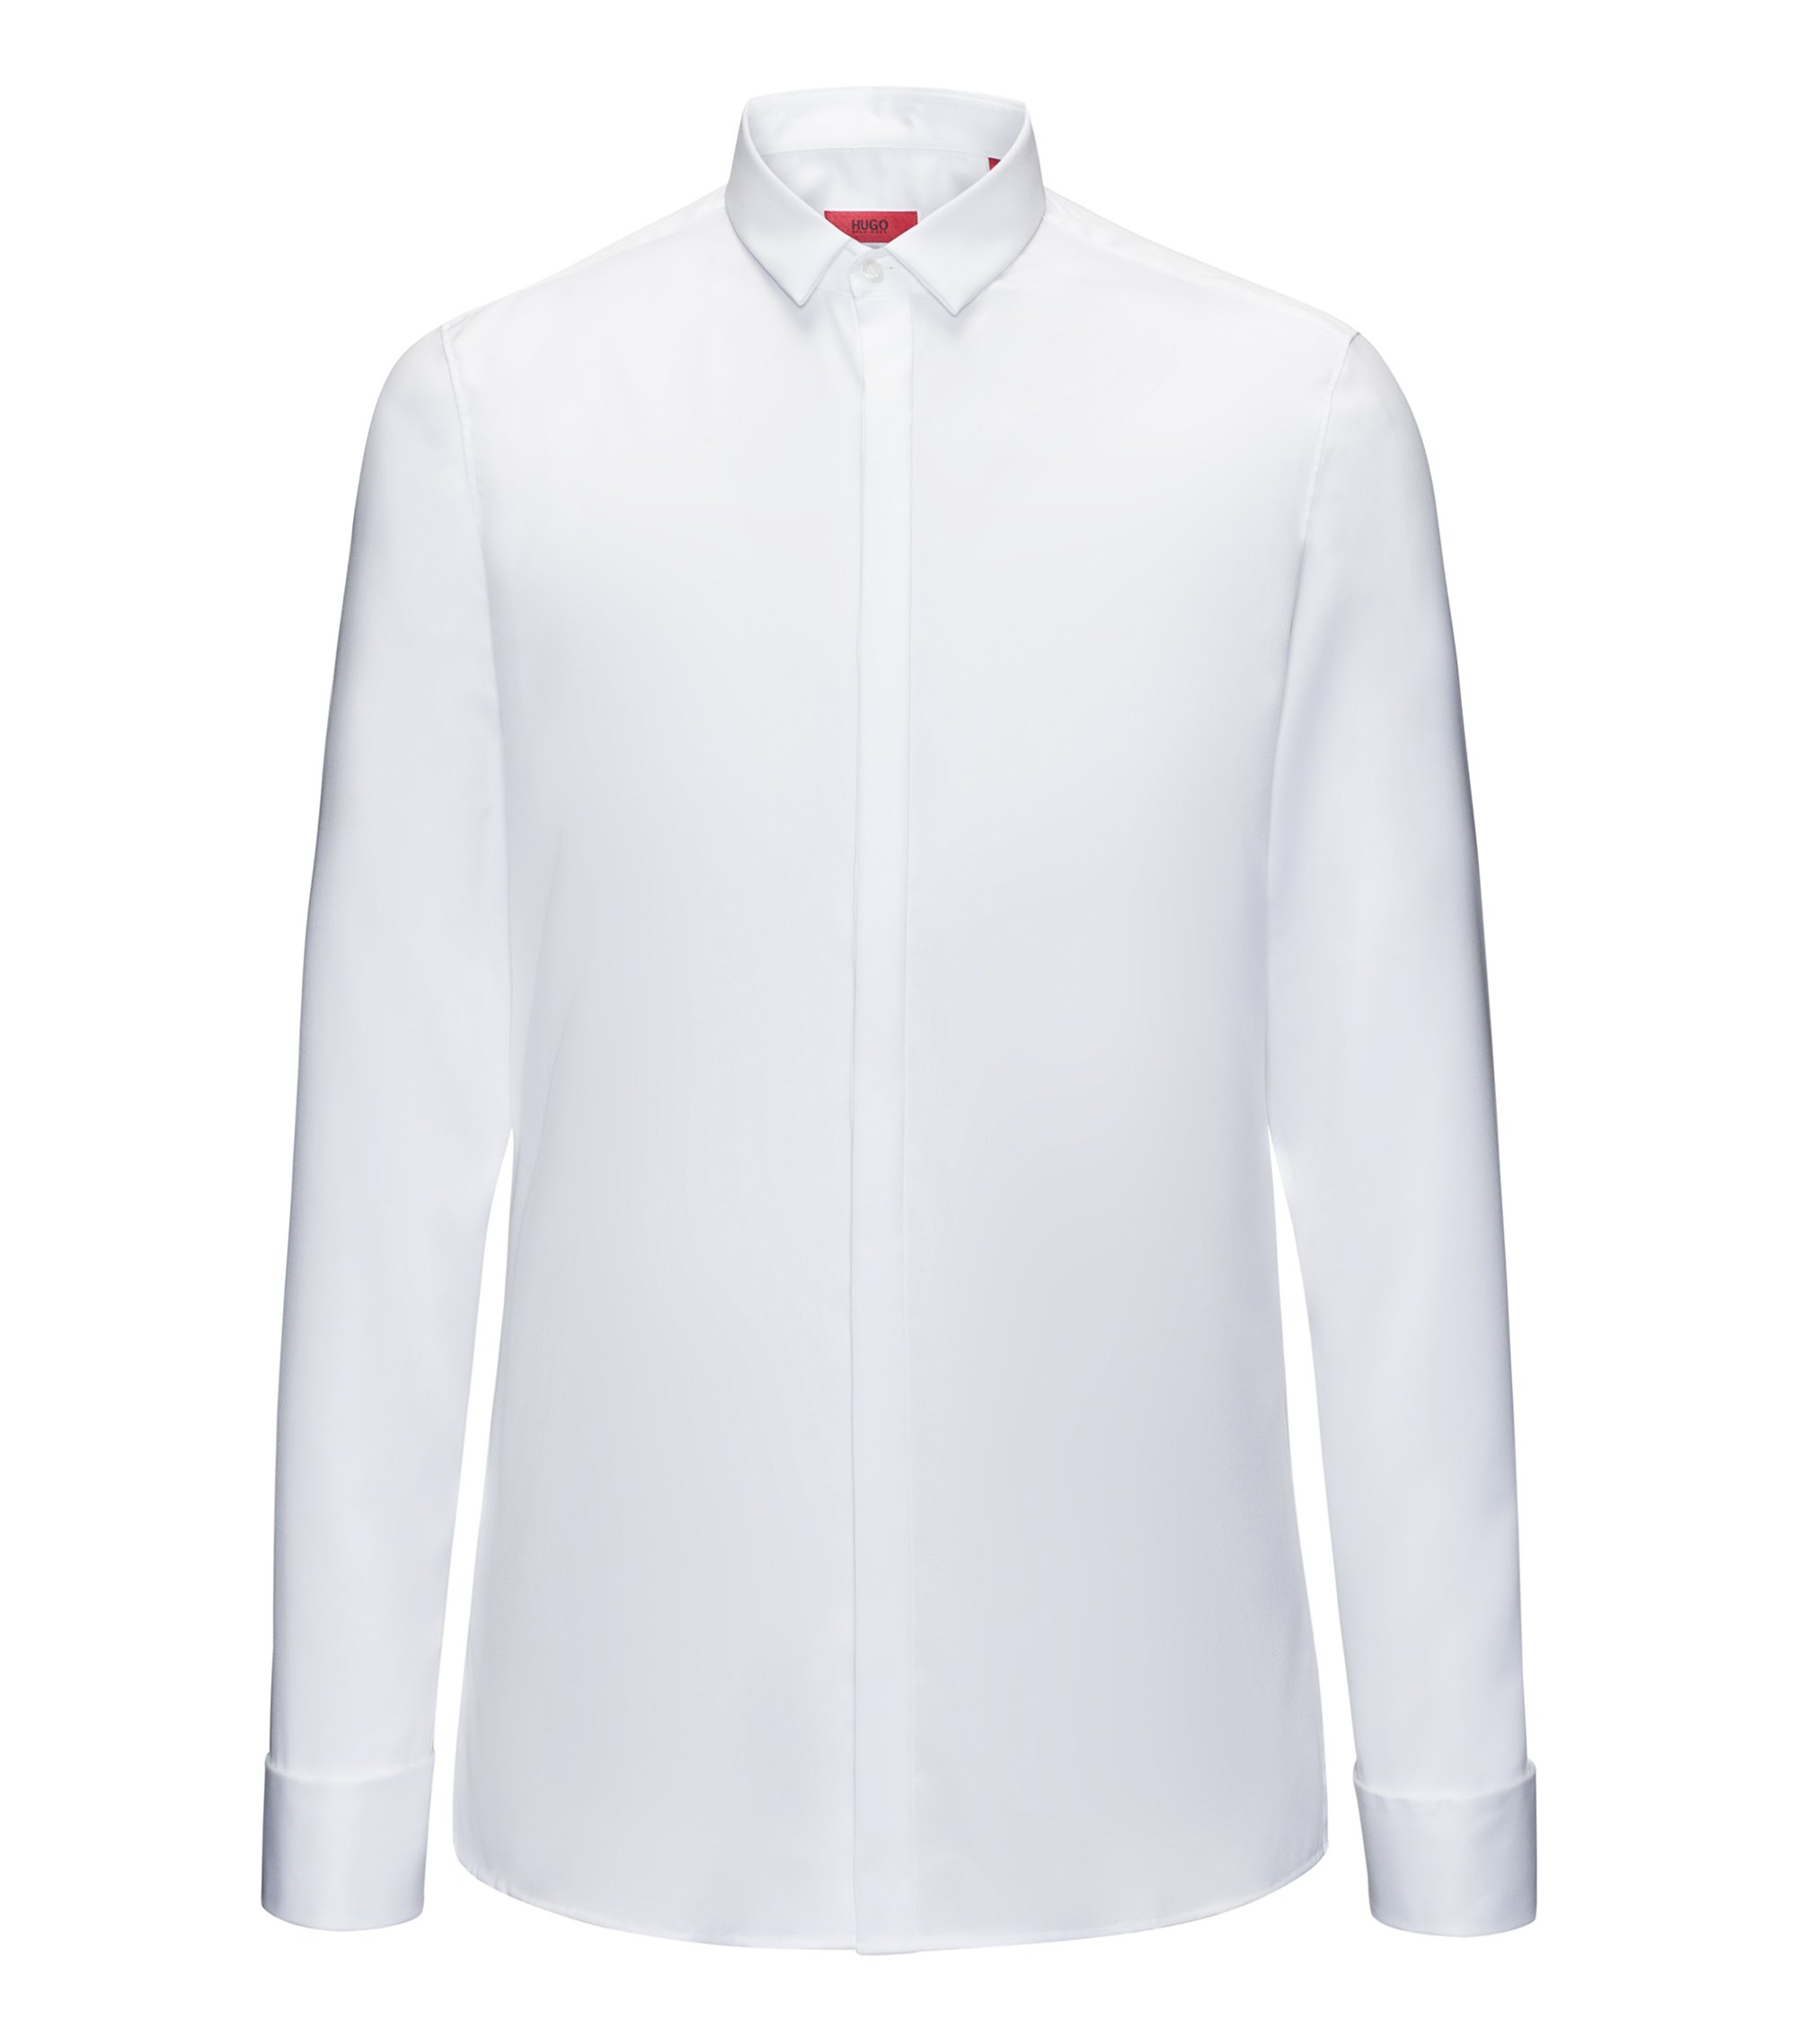 Camicia da smoking extra slim fit in cotone a righe diagonali, Bianco